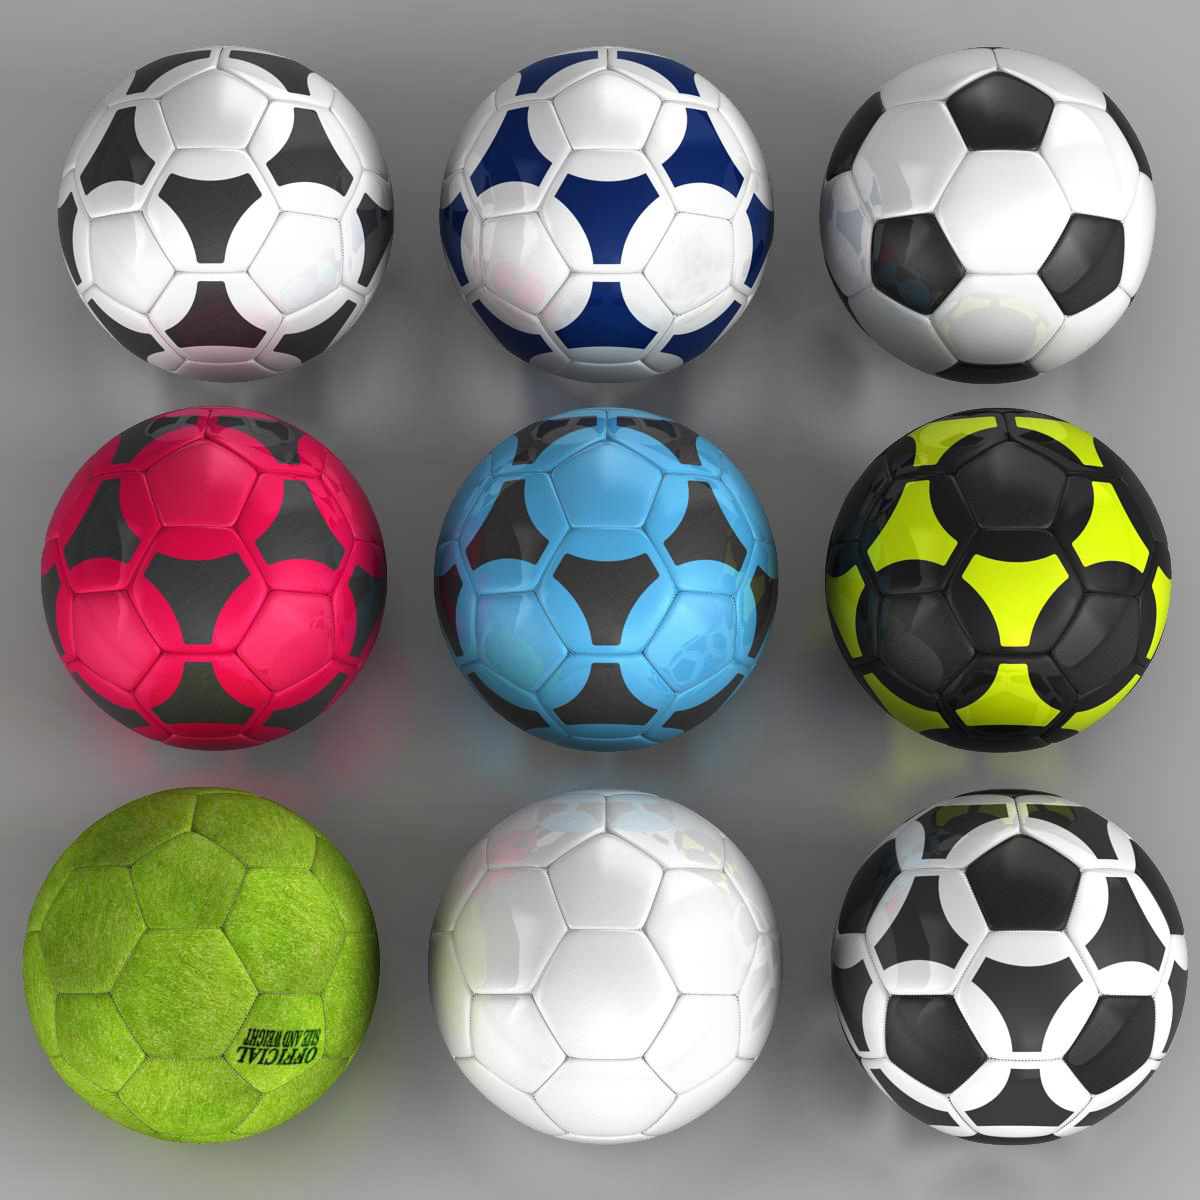 set soccerball 3d model 3ds max fbx c4d ma mb obj 205436